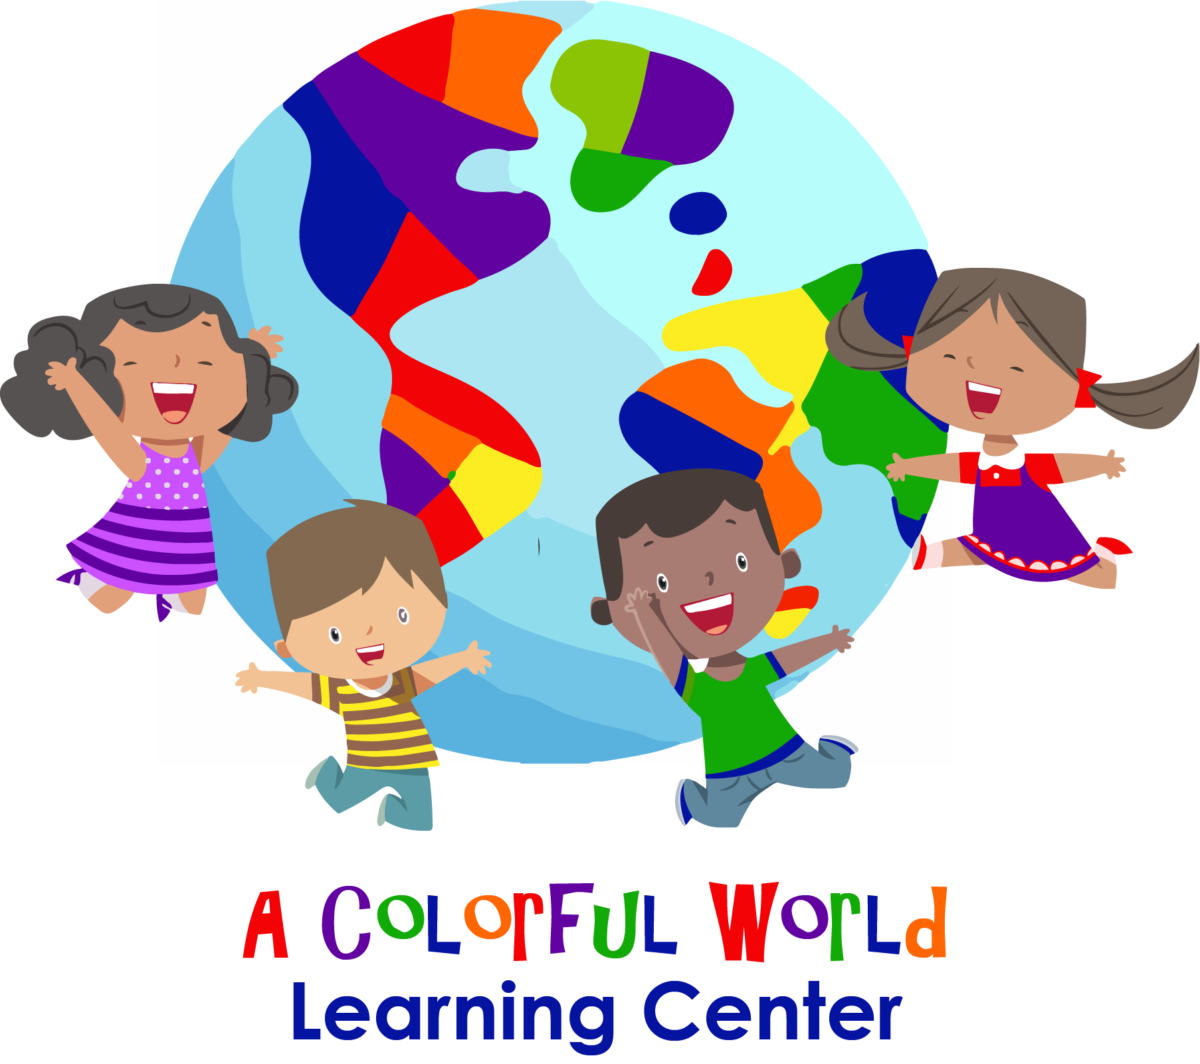 Preschool clipart promotion. Early education in columbus